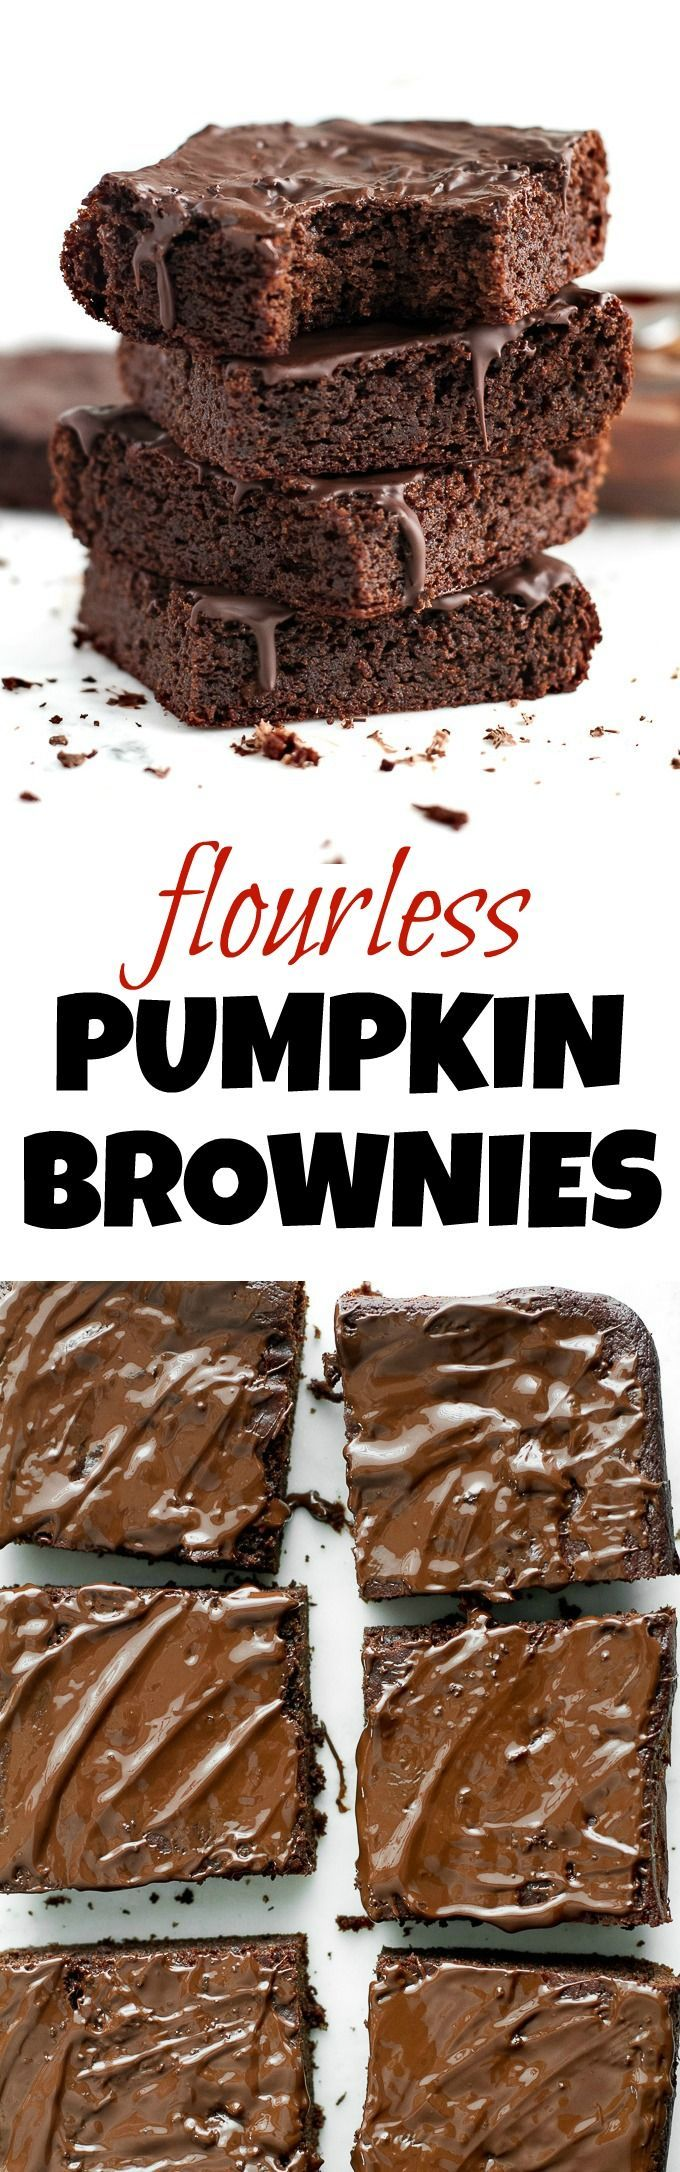 Flourless Pumpkin Brownies made in the blender with only 7 ingredients! They're grain-free, oil-free, dairy-free, and refined-sugar-free, so they make a deliciously healthy snack for when the chocolat